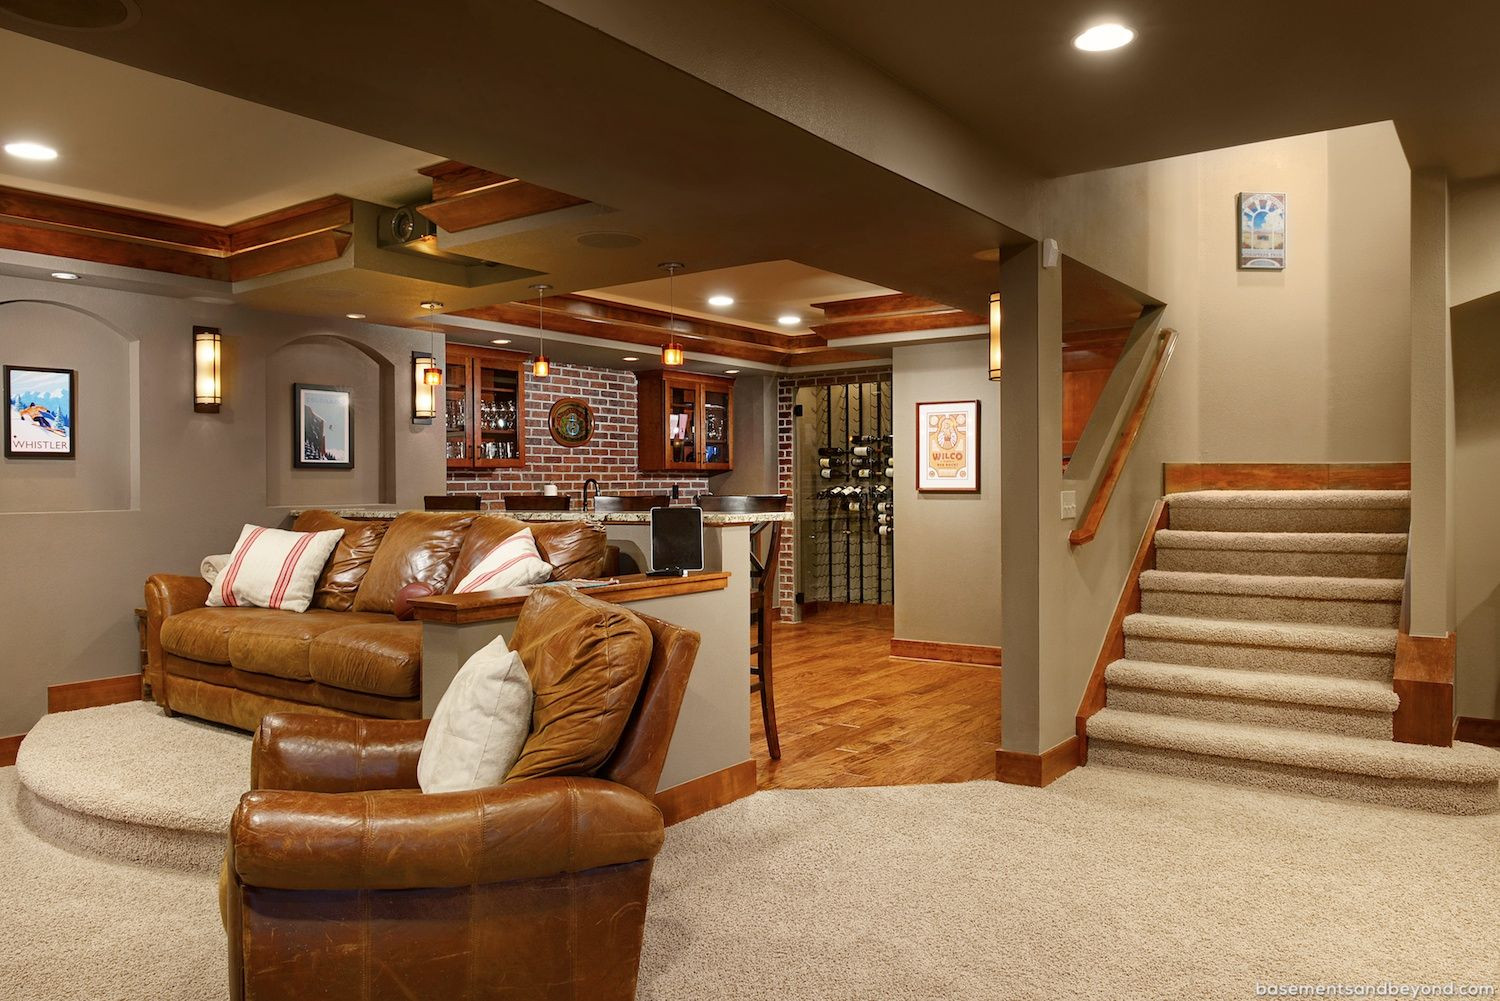 Best ideas about Basement Ideas Pinterest . Save or Pin Wow just superb REMODELLED BASEMENT IDEAS Now.